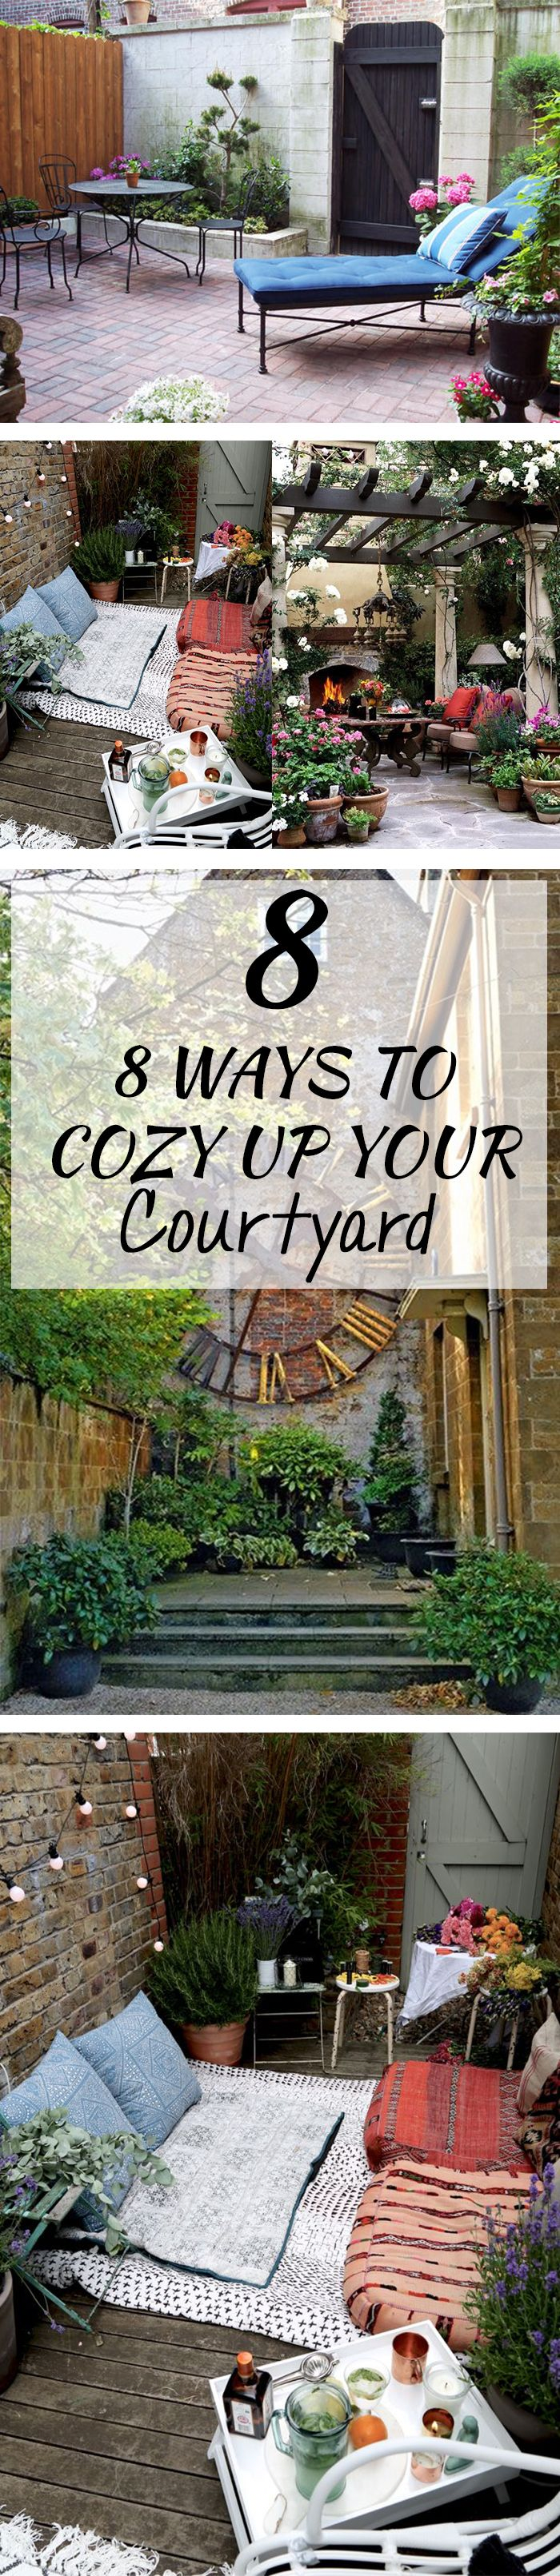 Shared Privacy (or not!) ~ The COZY COURTYARD